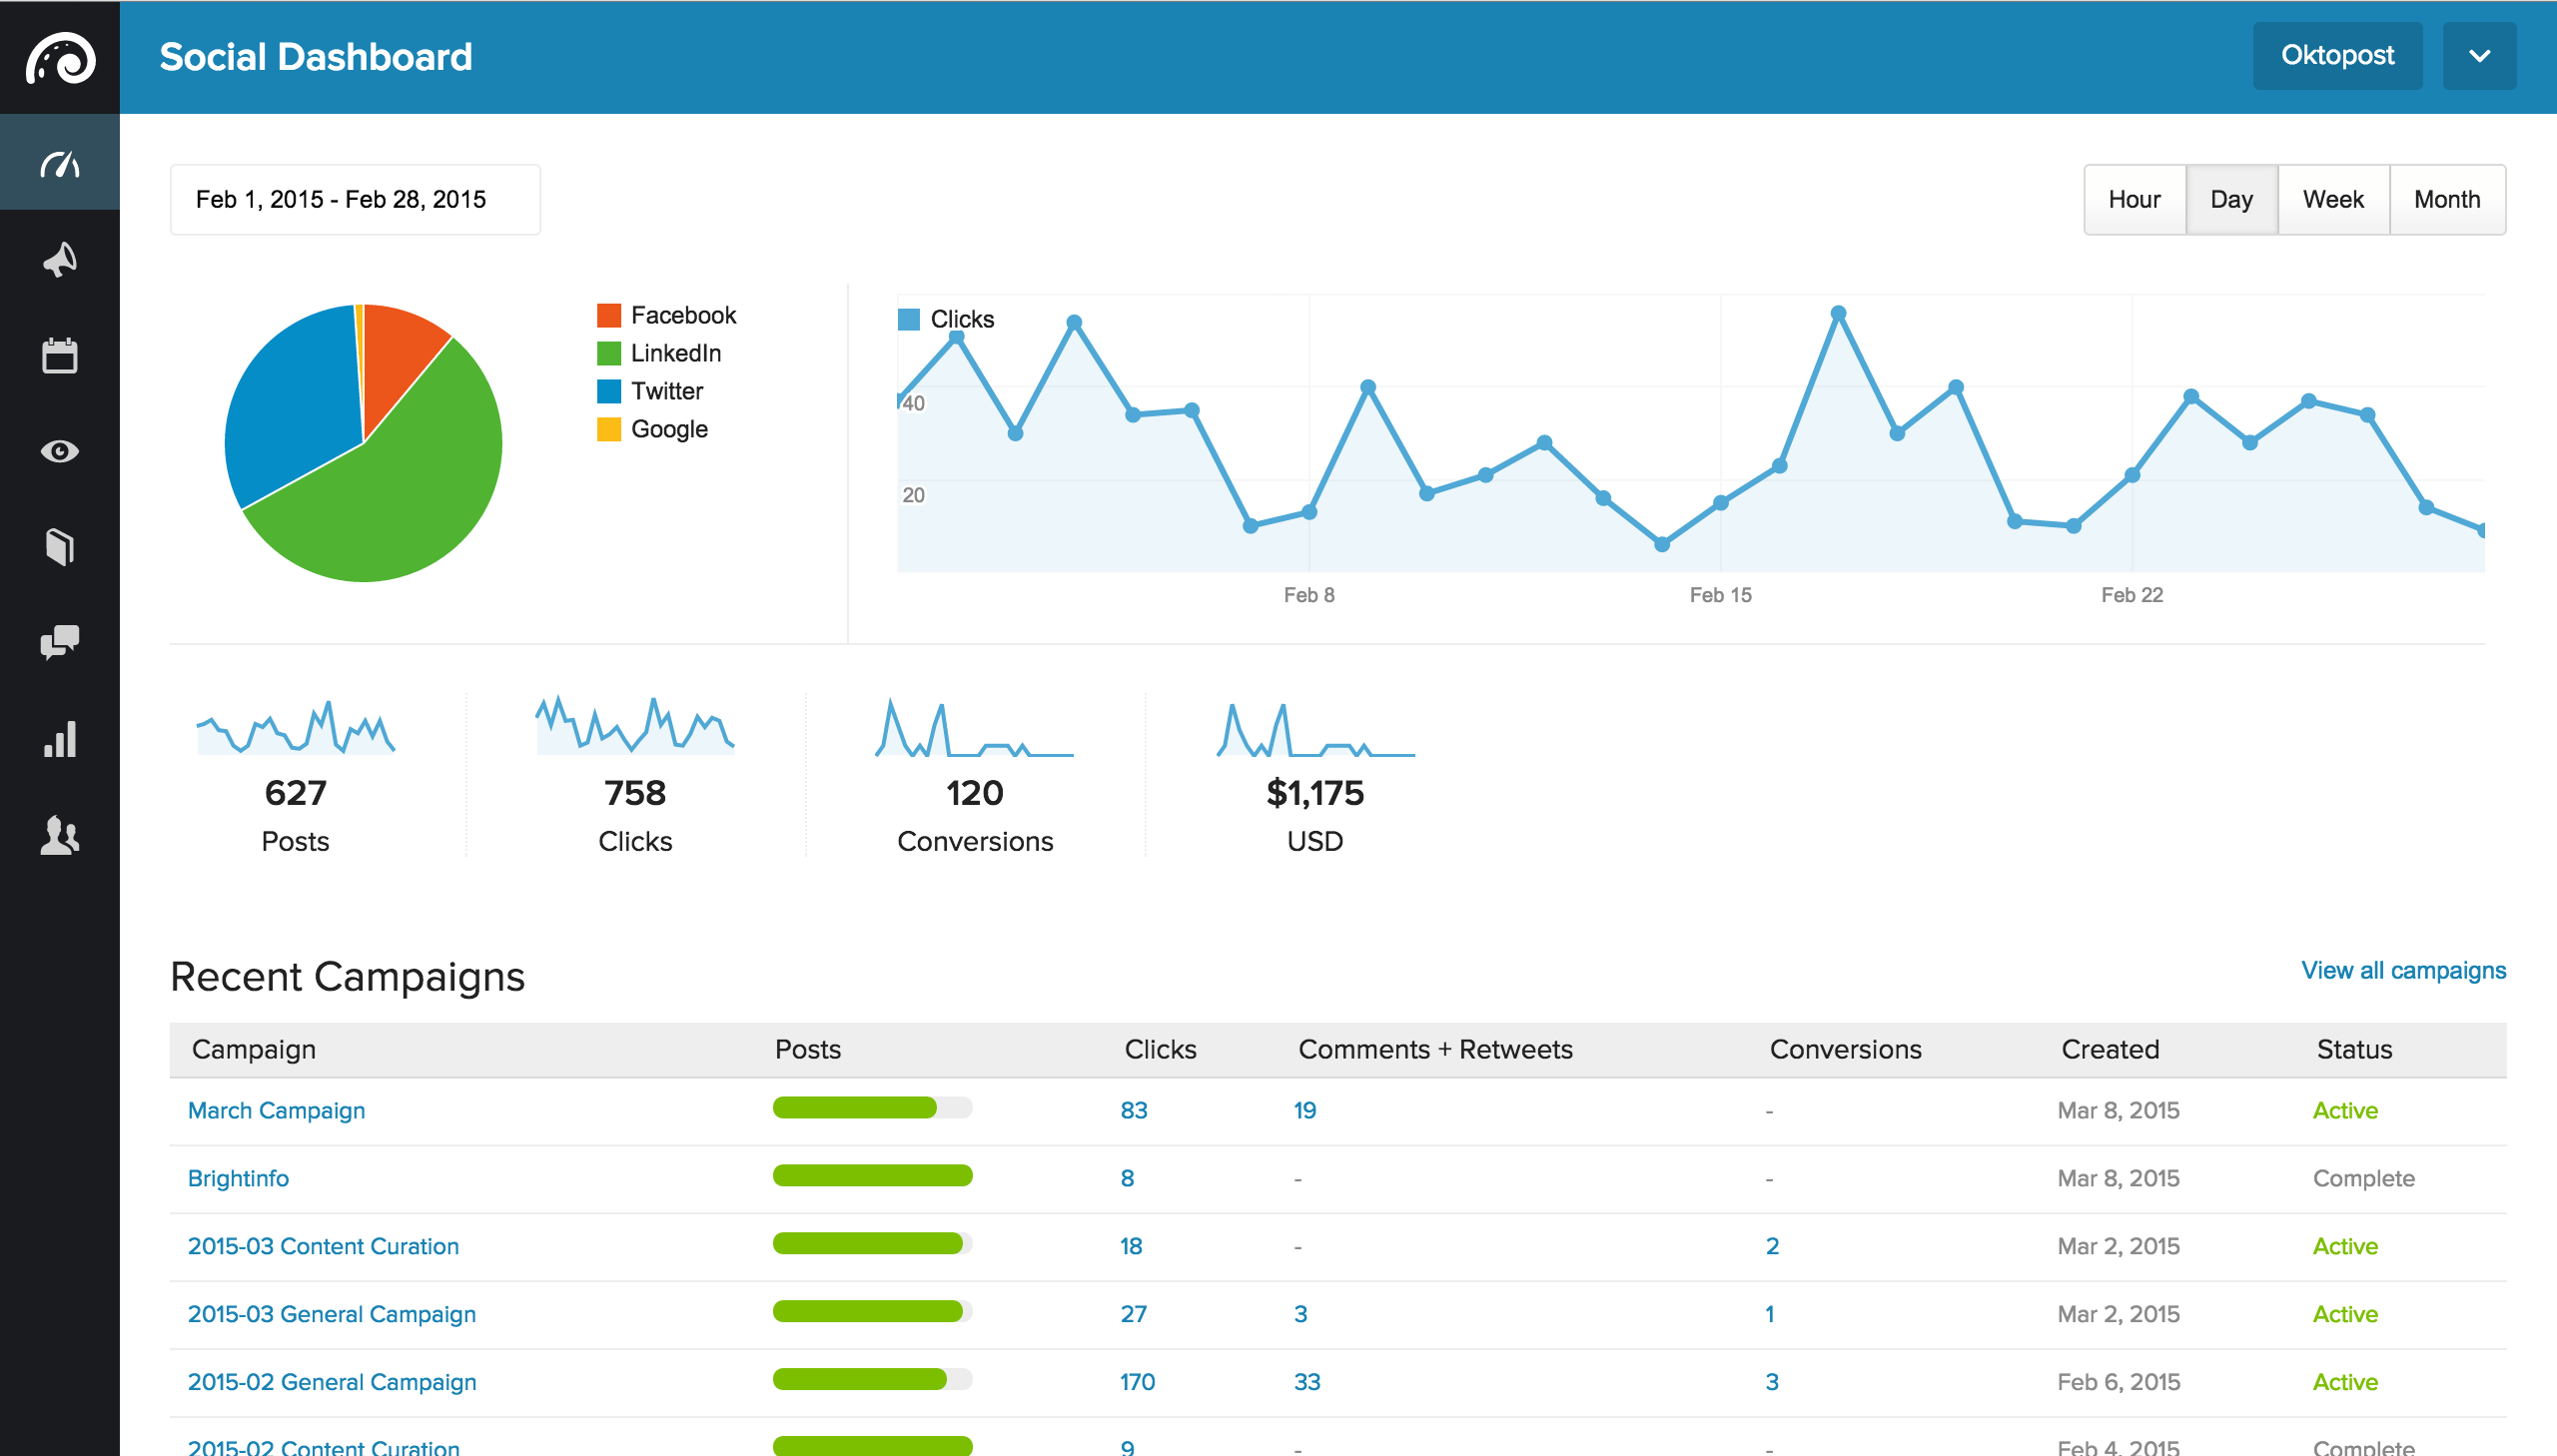 A screenshot of the Oktopost dashboard